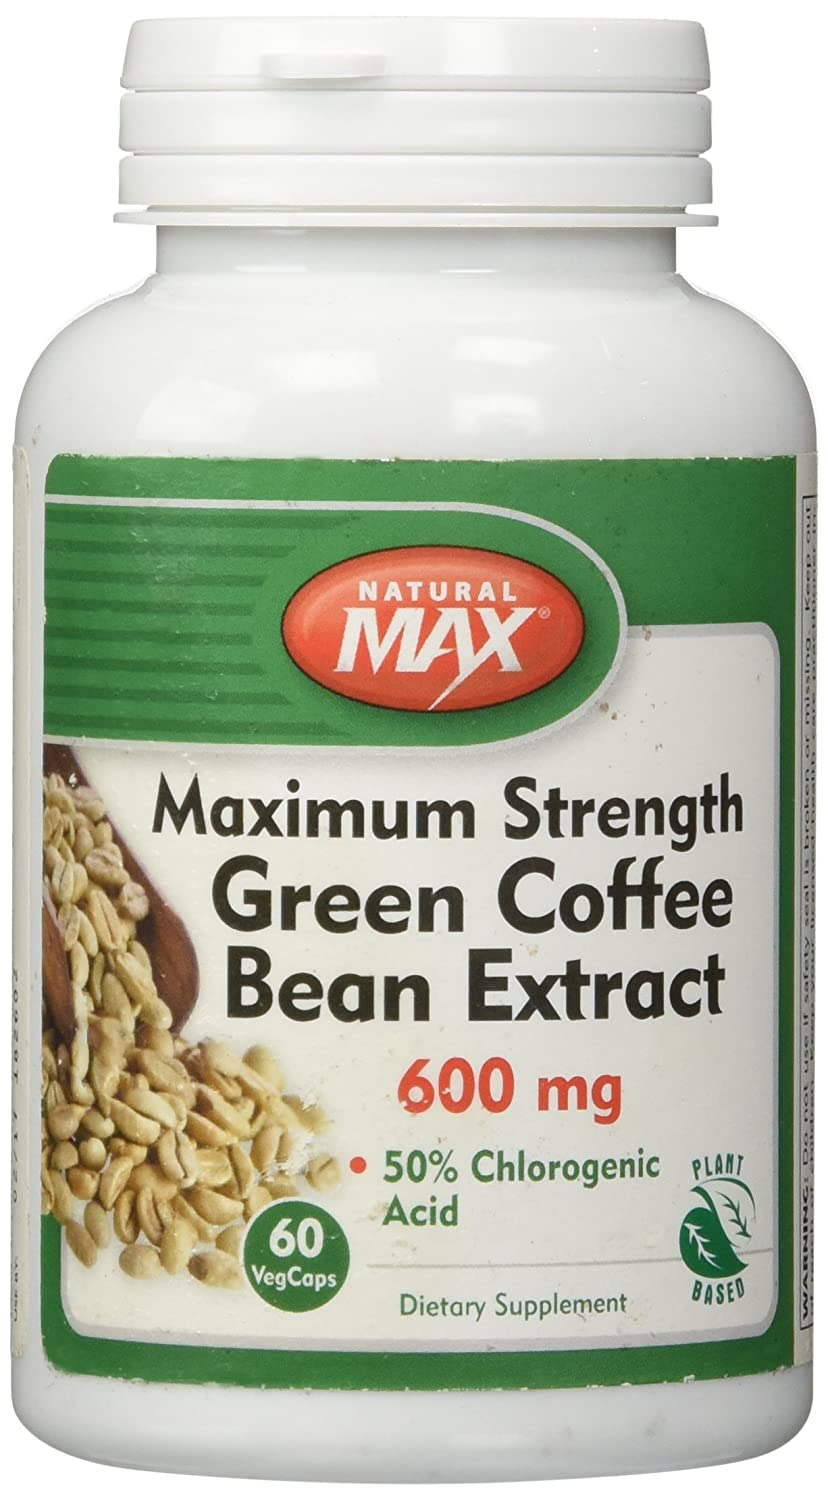 green coffee bean extract 600 mg